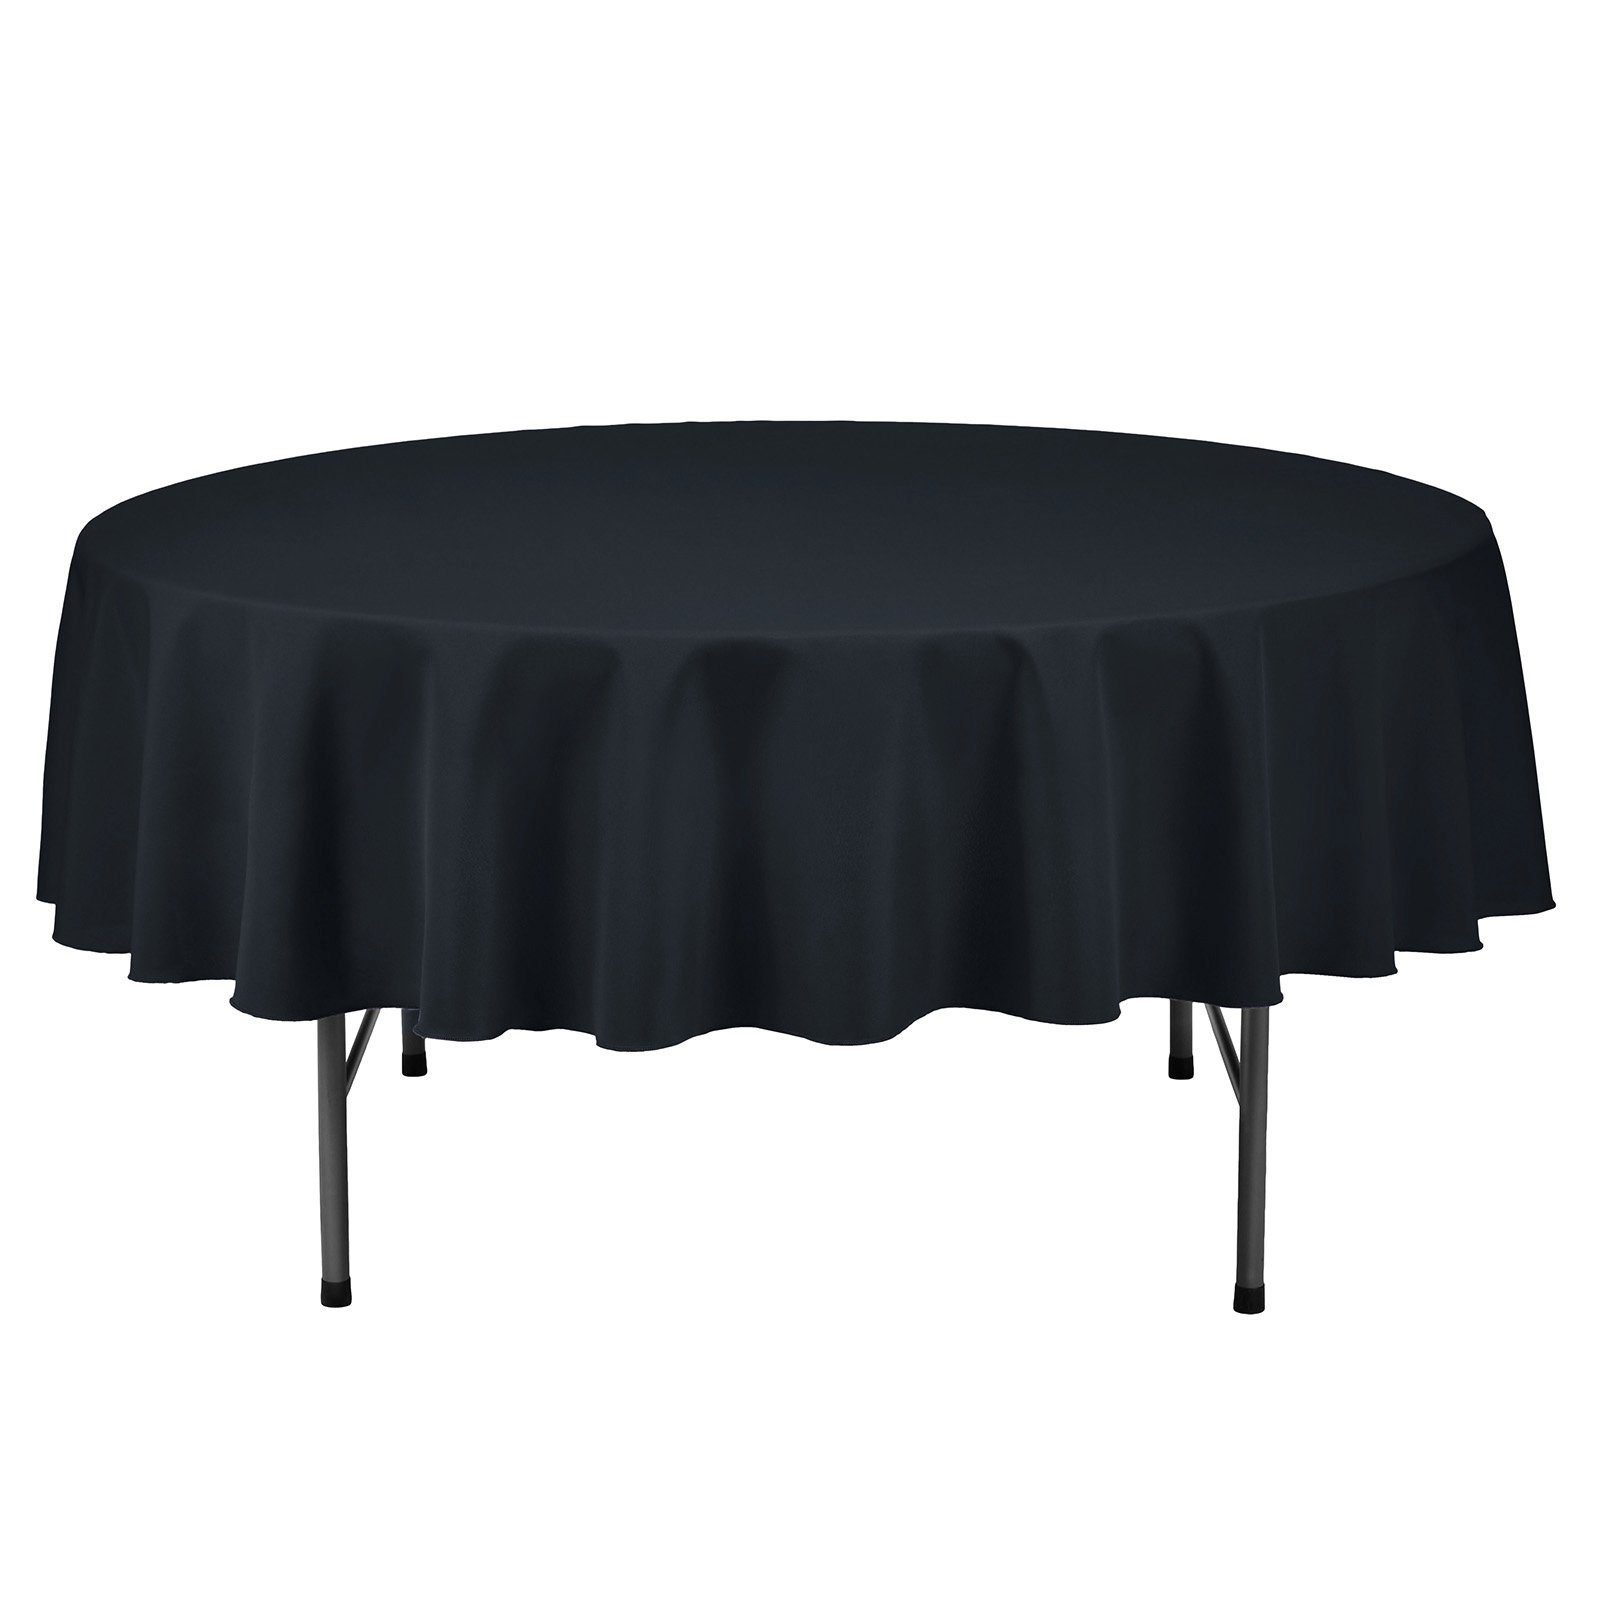 Remedios Round Tablecloth Solid Color Polyester Table Cloth for Bridal Shower Wedding Table – Wrinkle Free Dinner Tablecloth for Restaurant Party Banquet (Navy Blue, 70 inch)